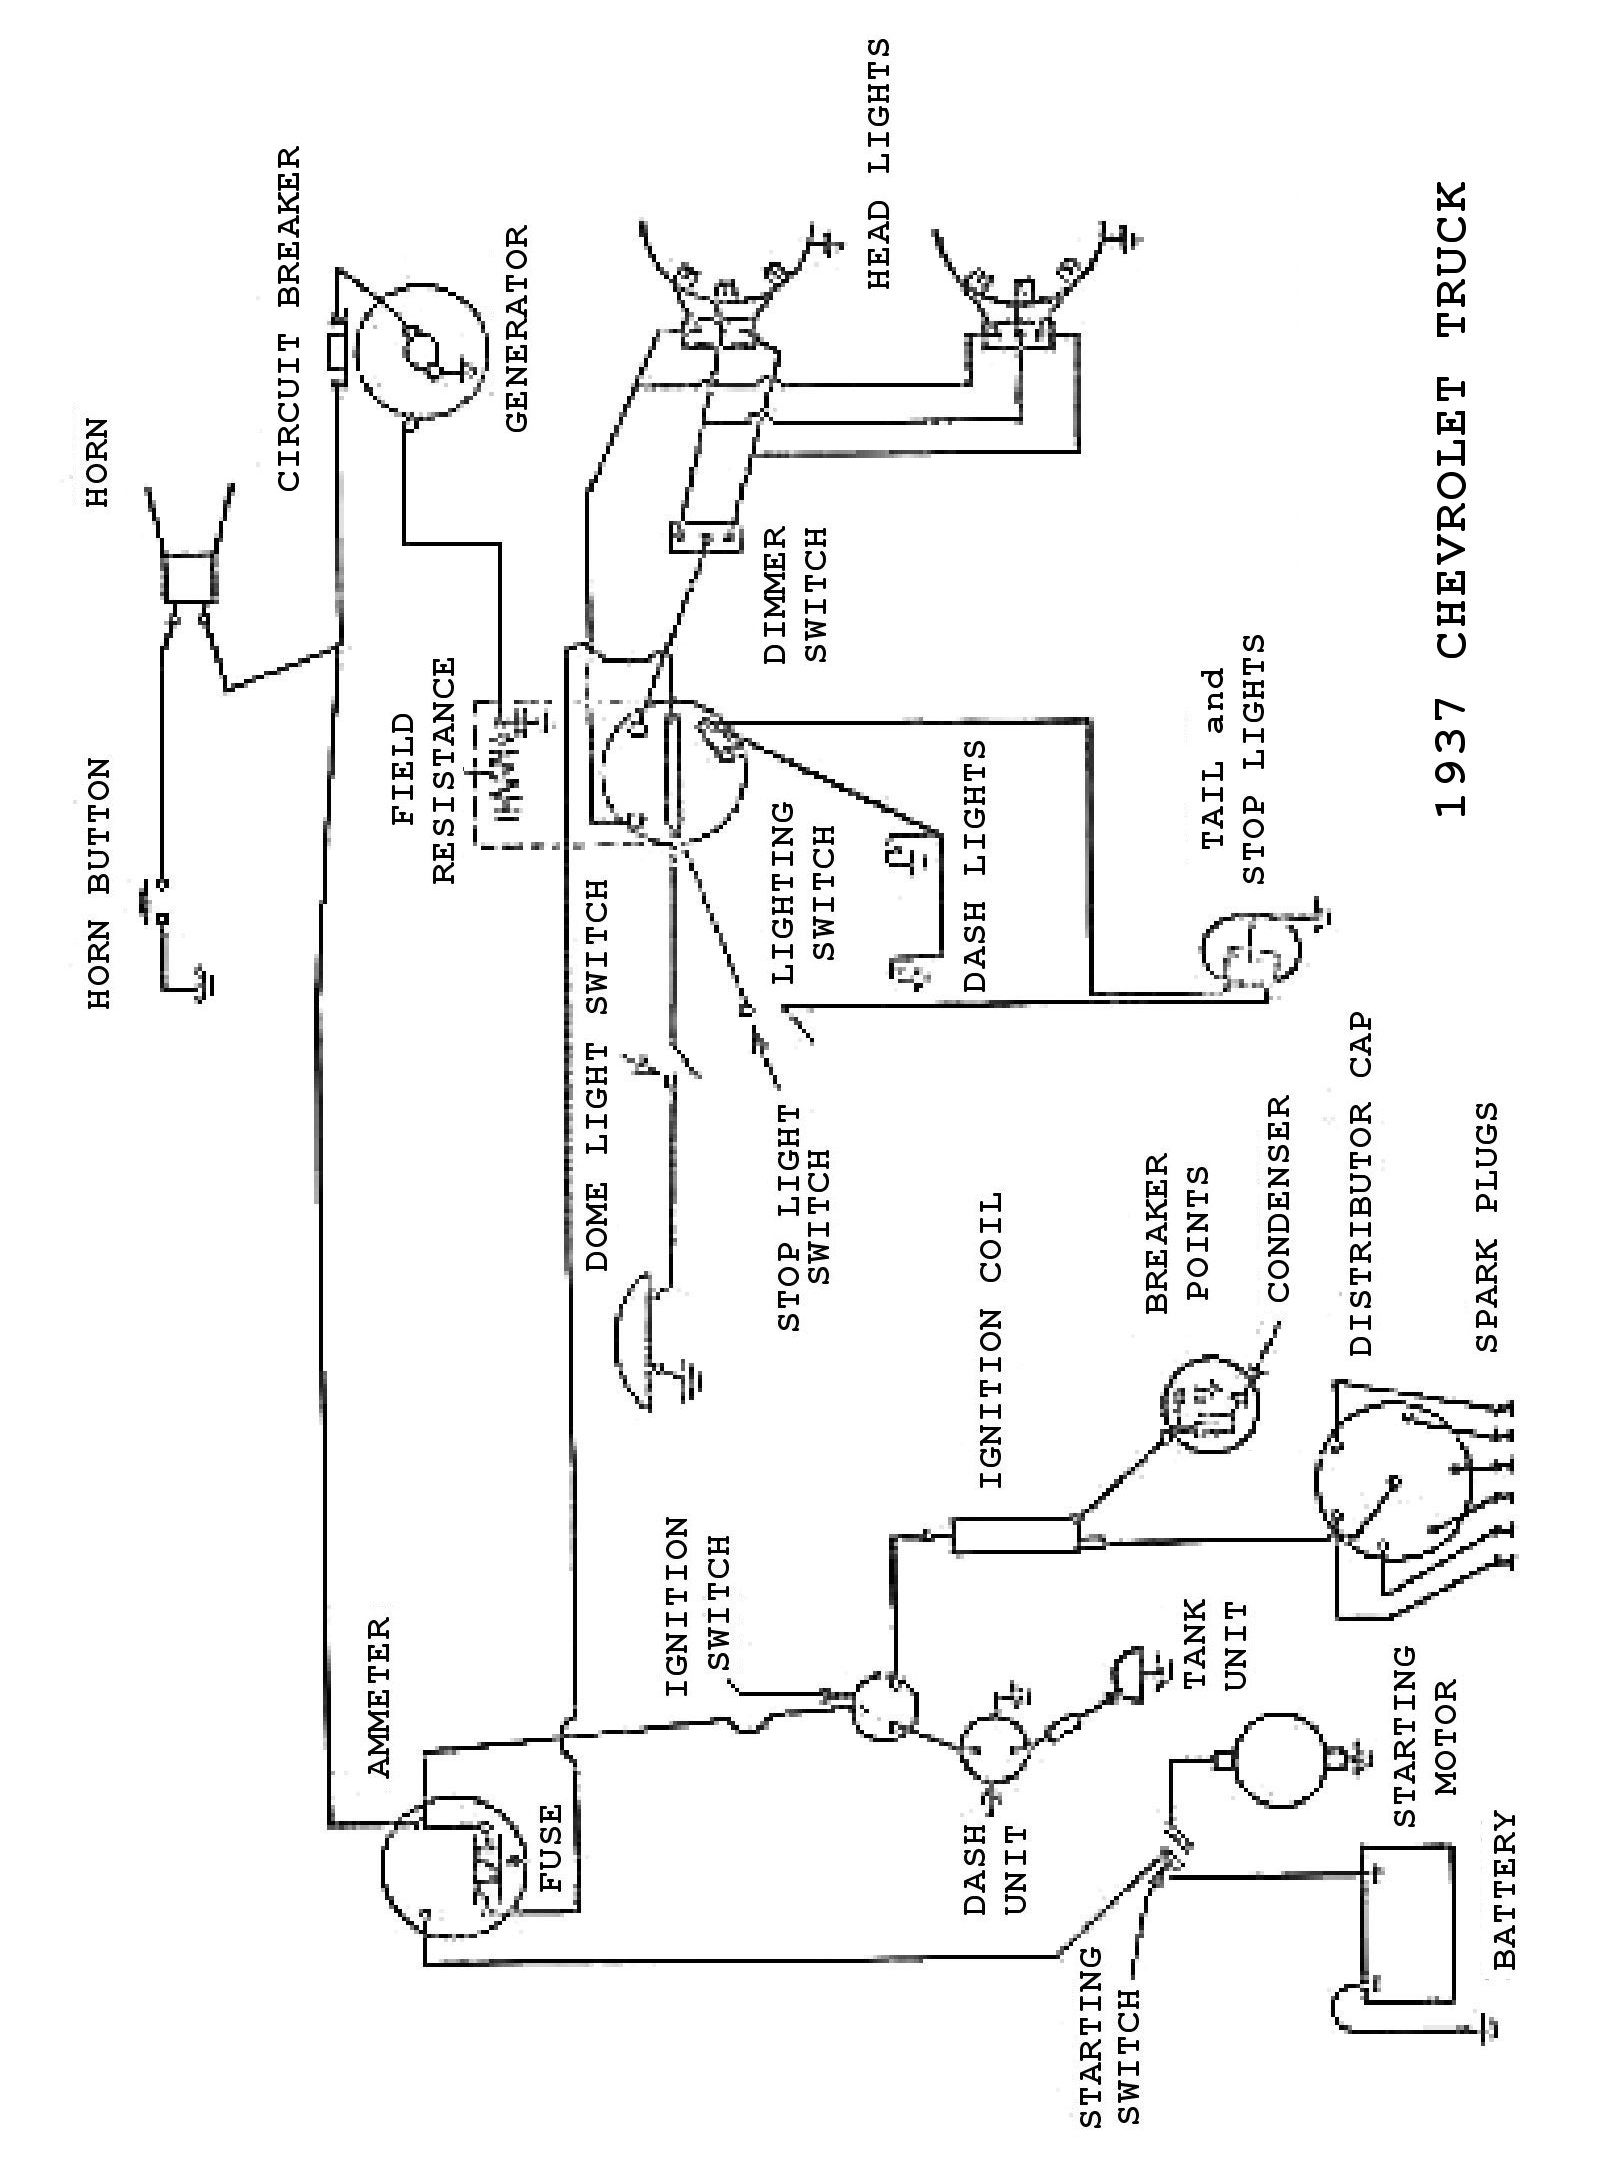 37truck wiring diagram for a 1937 chevy truck wiring diagram simonand 66 Chevy Headlight Switch Wiring Diagram at soozxer.org